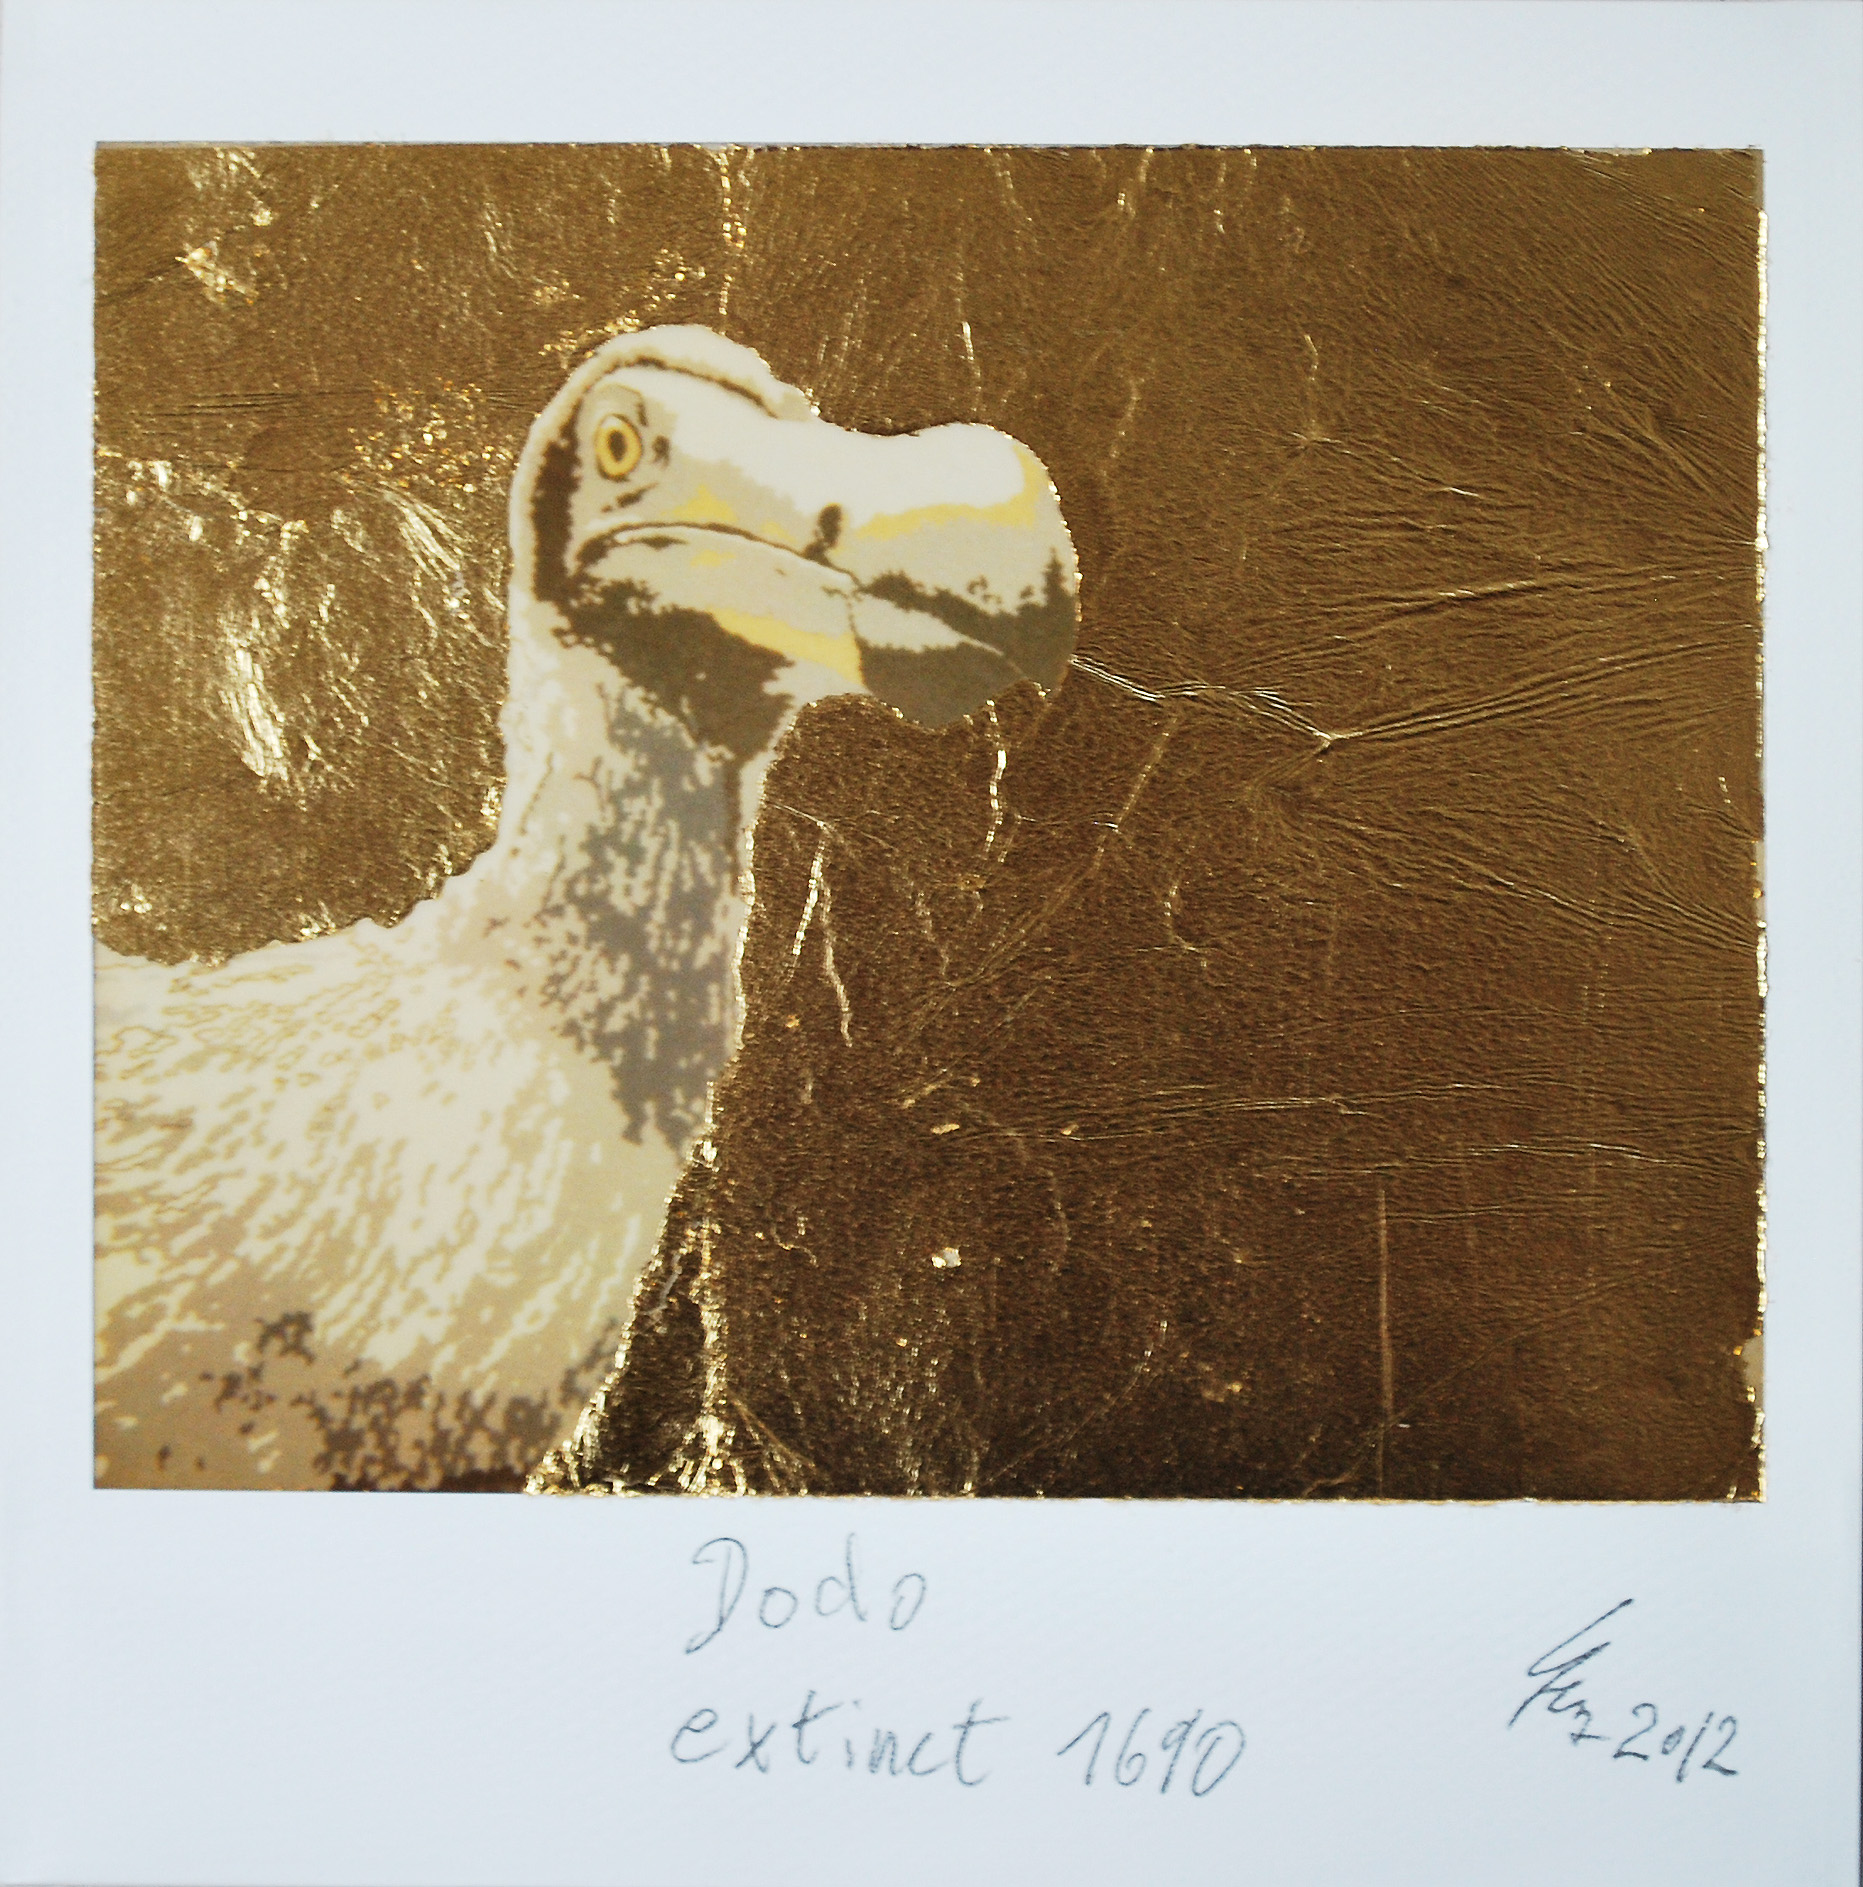 Dodo extinct 1690<span> • Polaroid, Blattgold 23 Karat, 2012</span>